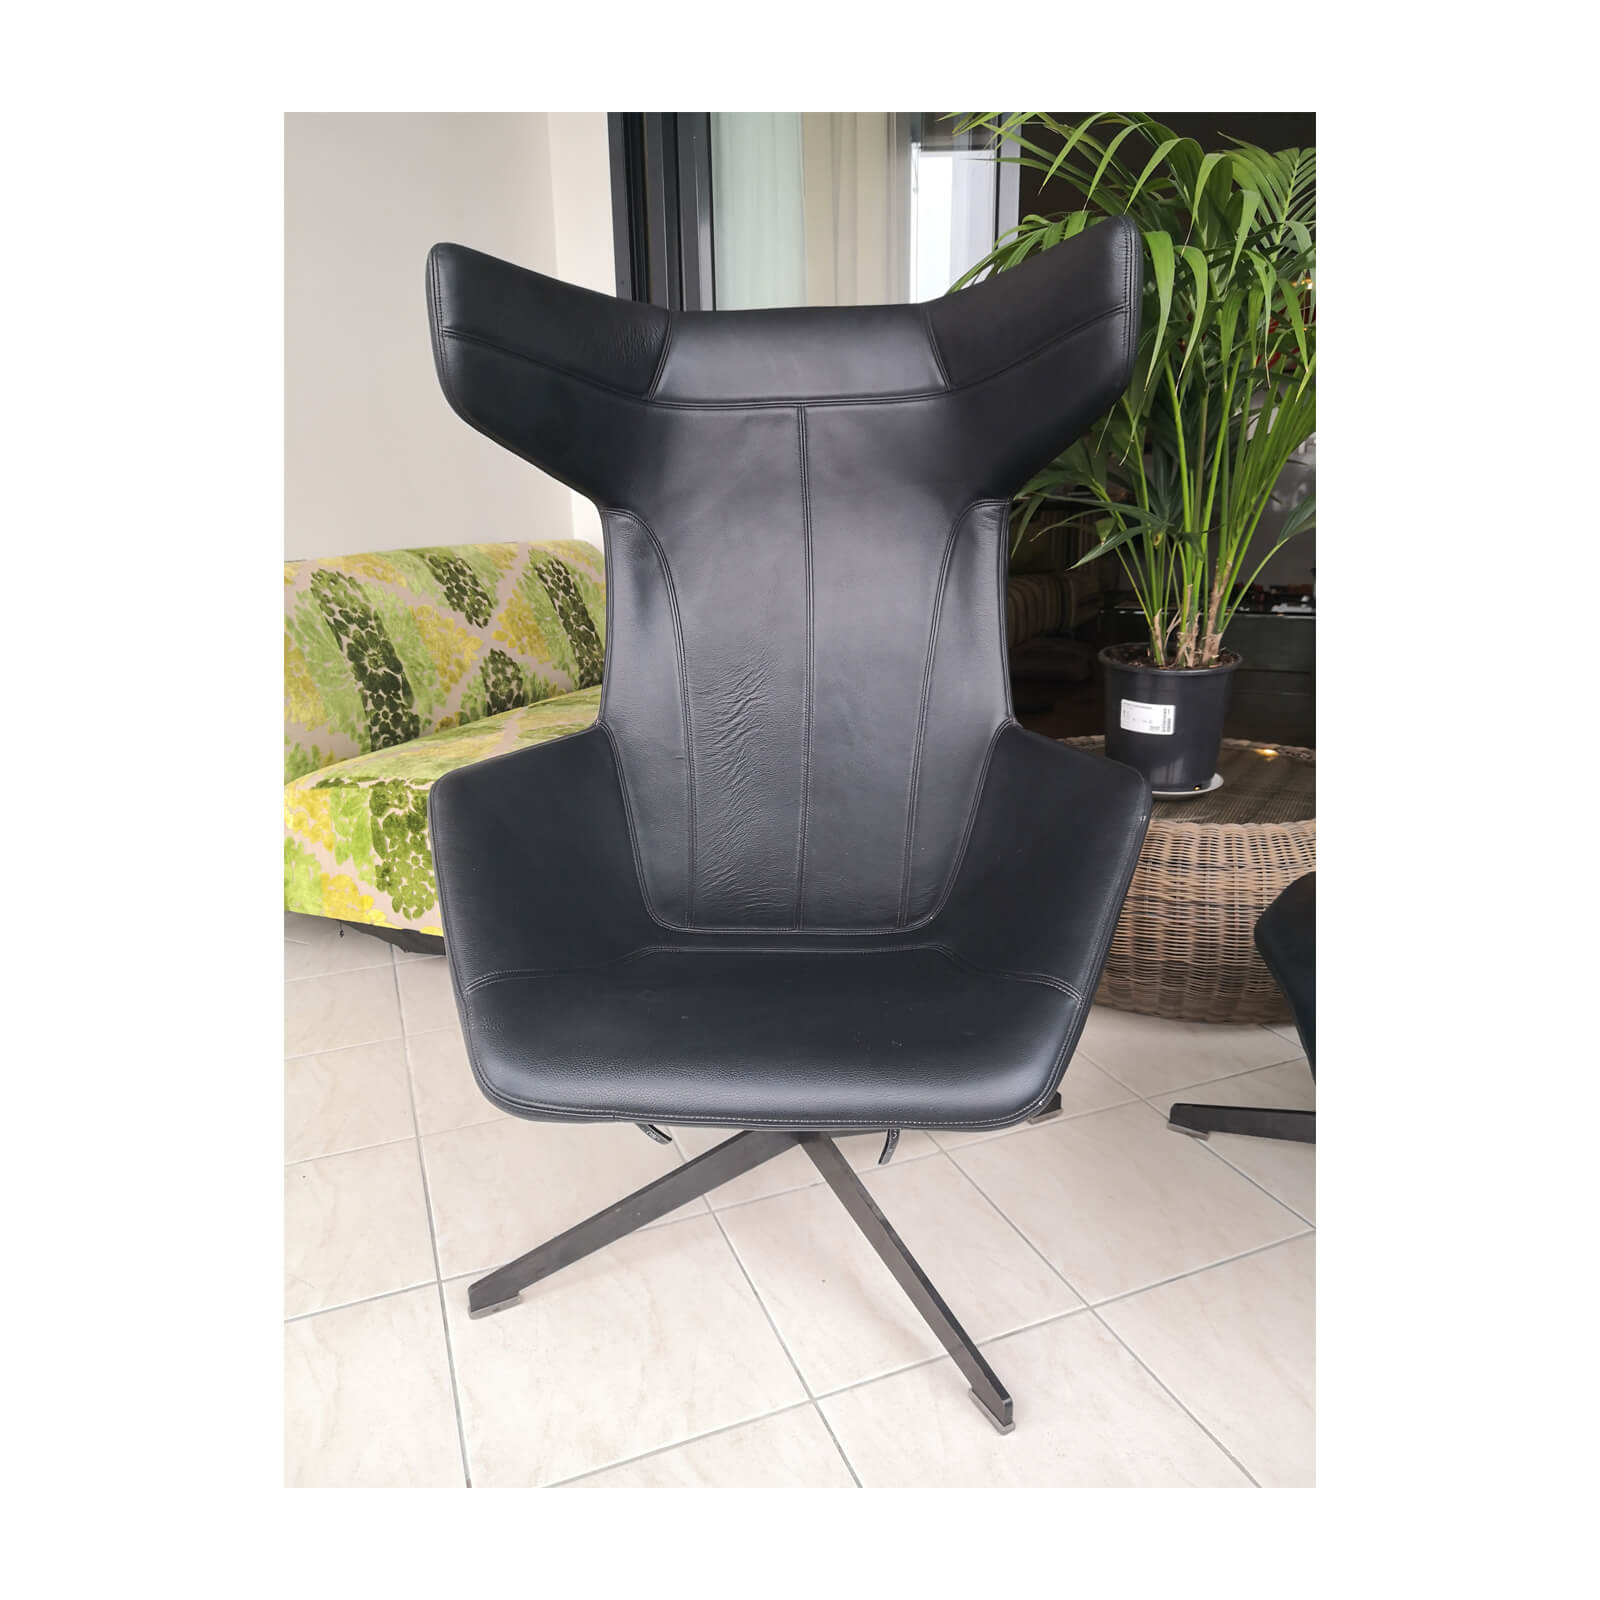 Two Design Lovers Moroso Take a Line for a Walk black swivel chair with footstool 3